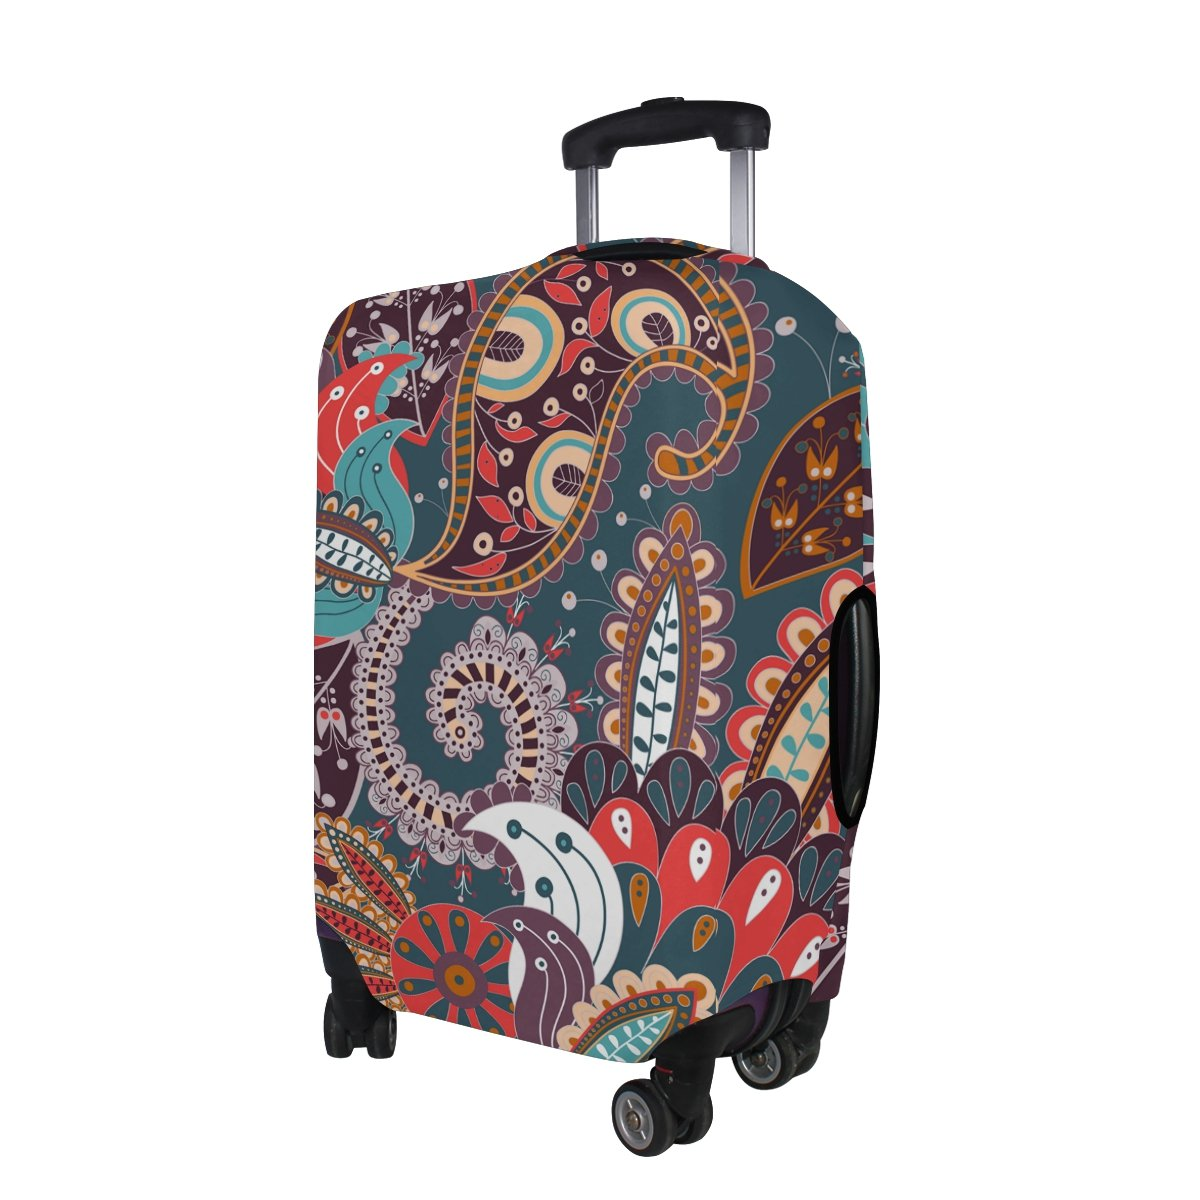 Bohemian Hippie Print Travel Luggage Protector Baggage Suitcase Cover Fits 29-32 Inch Luggage by CoolPrintAll (Image #4)